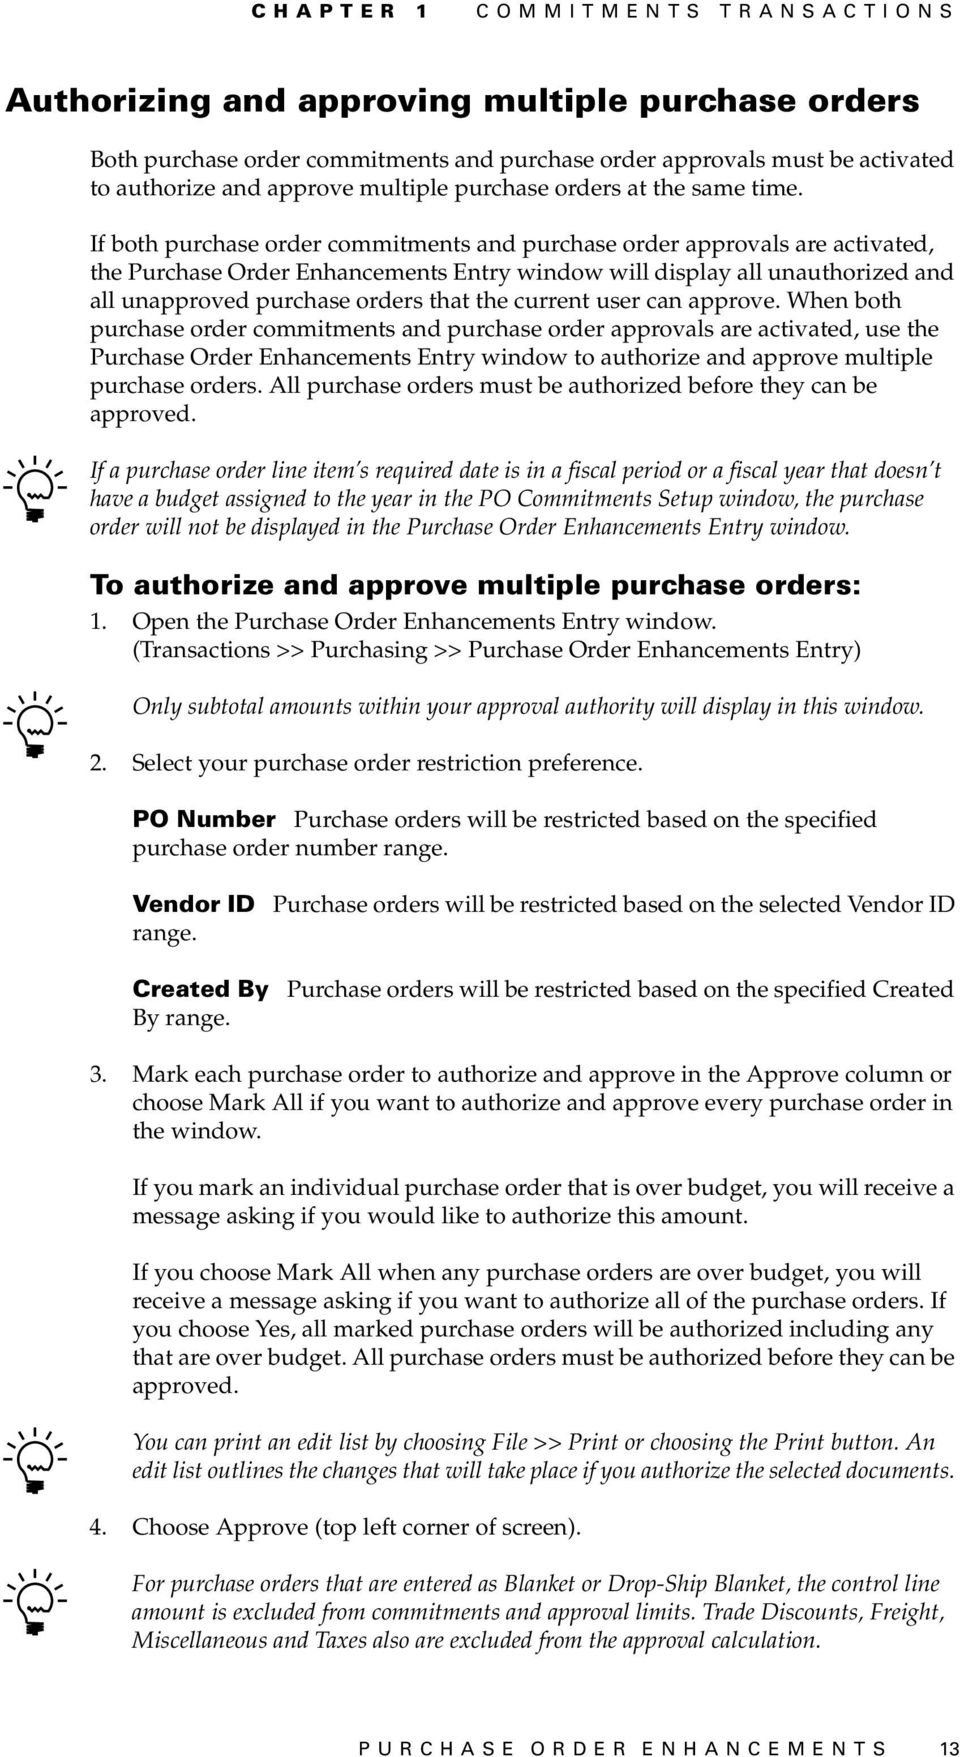 If both purchase order commitments and purchase order approvals are activated, the Purchase Order Enhancements Entry window will display all unauthorized and all unapproved purchase orders that the